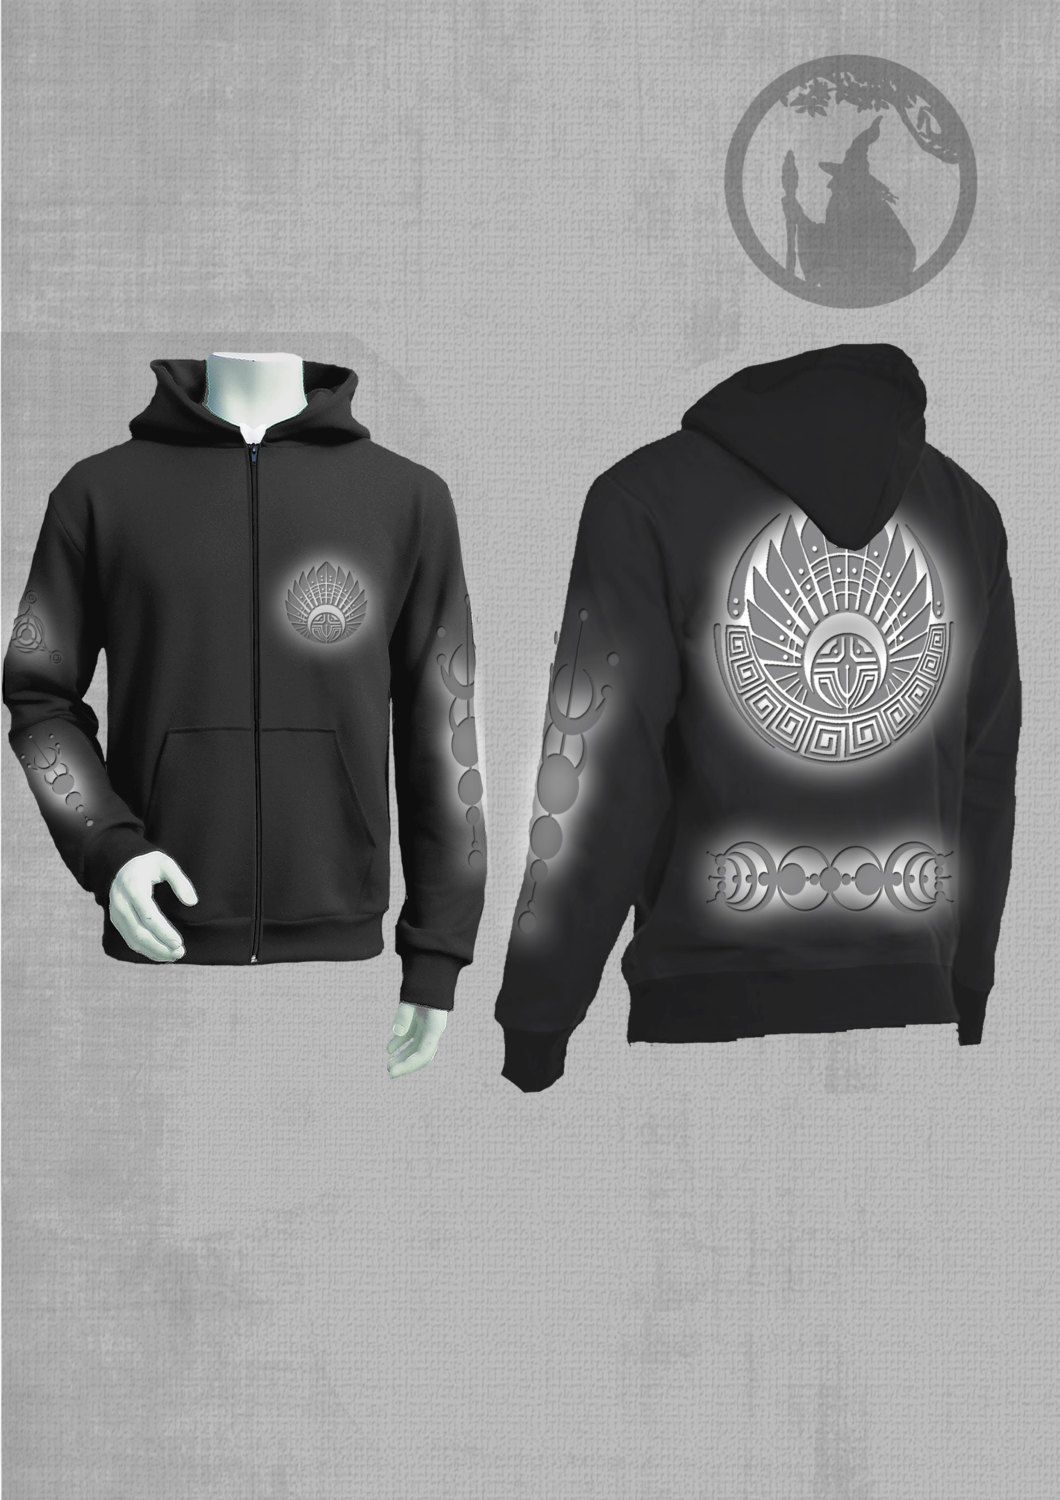 Mens Reflective Jacket Hoodie Crop Circles Psychedelic Clothing Festival Wear Reflective Hippie Psy Clothi Psy Clothing Psychedelic Clothing Festival Outfits